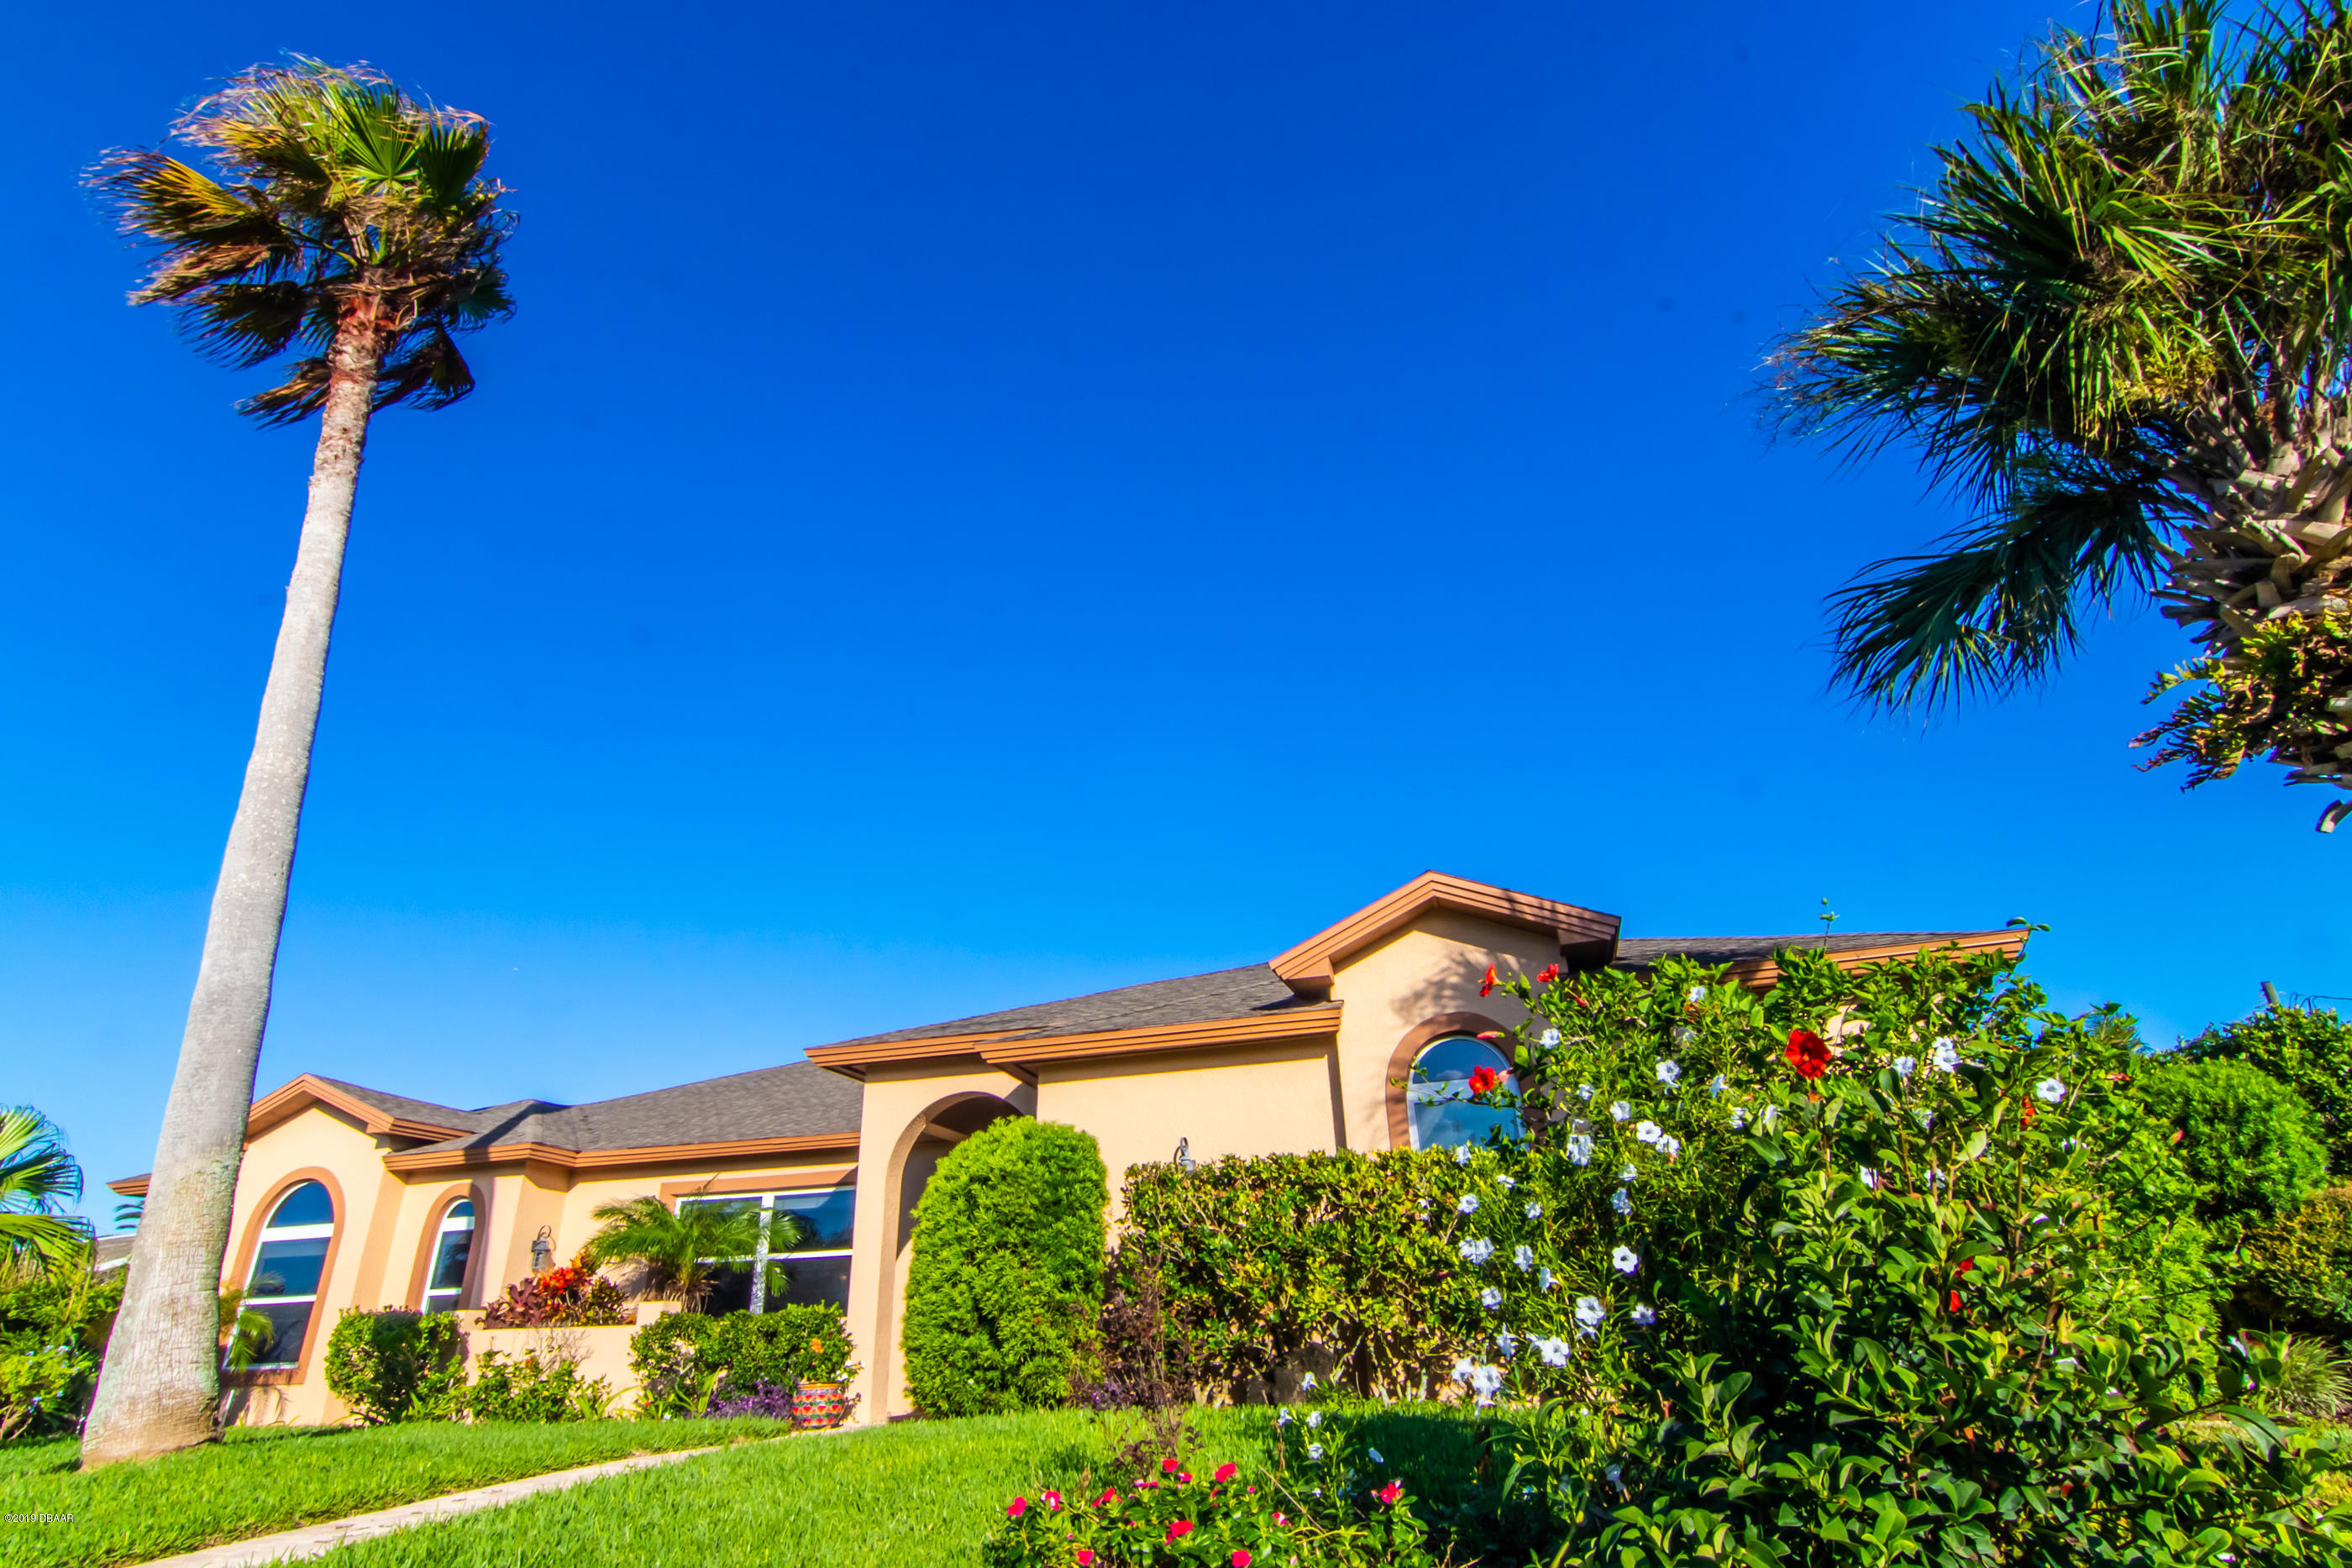 69 Seawinds Circle 32127 - One of Ponce Inlet Homes for Sale